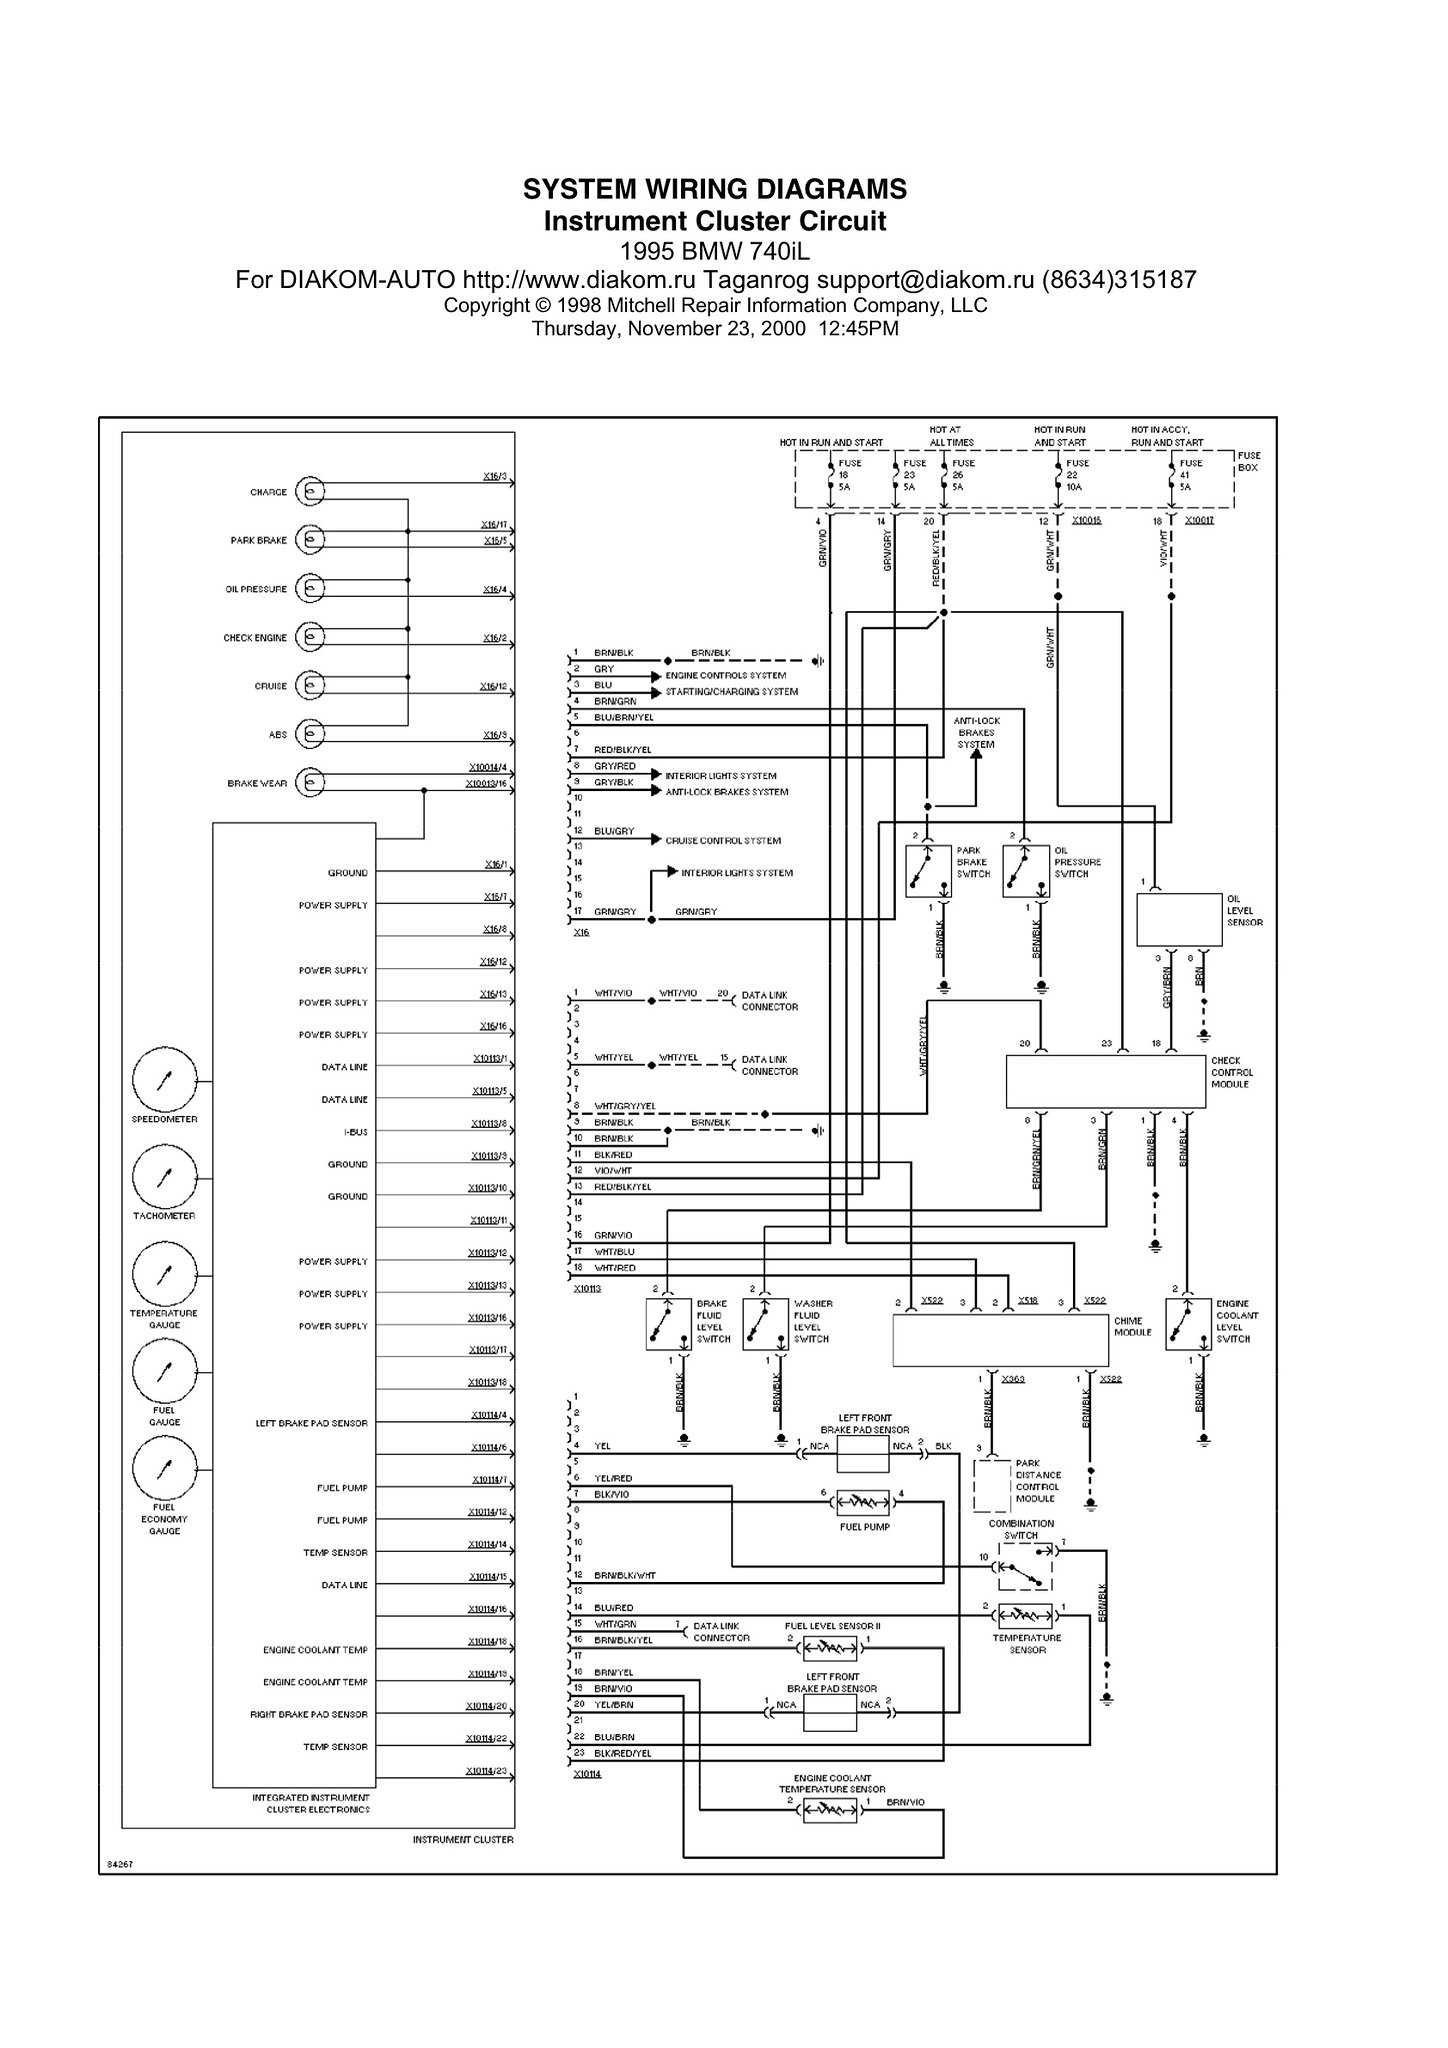 7703585142_dbc4ceb414_k bmw e39 wiring diagrams 1998 740i heated seat wiring diagram 2004 bmw 530i wiring diagrams at soozxer.org